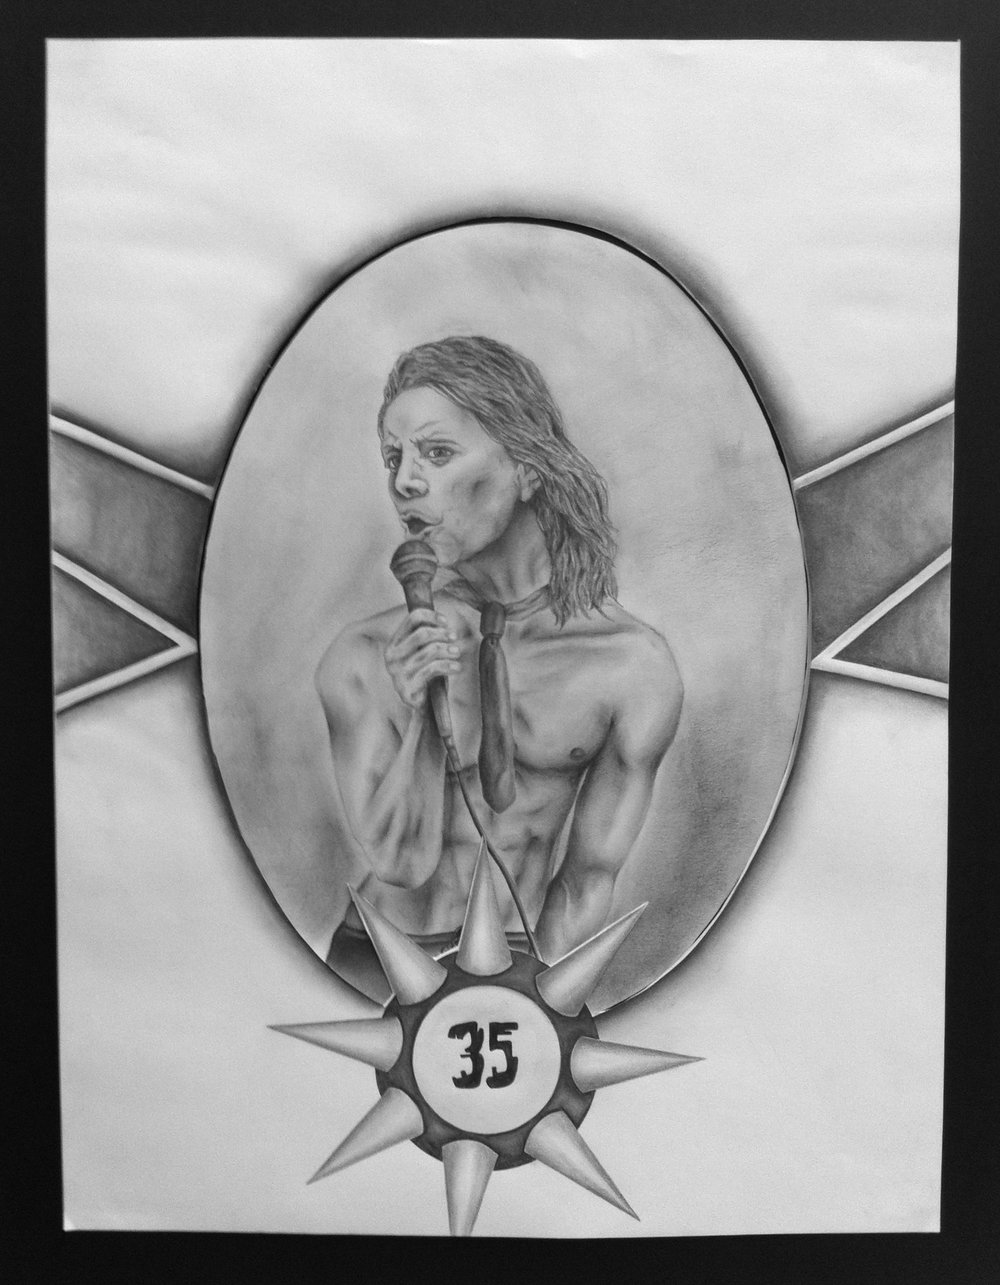 """""""35"""", Conspiracy Theory Project - John F. Kennedy as Iggy Pop, Pencil on Paper, 2013"""